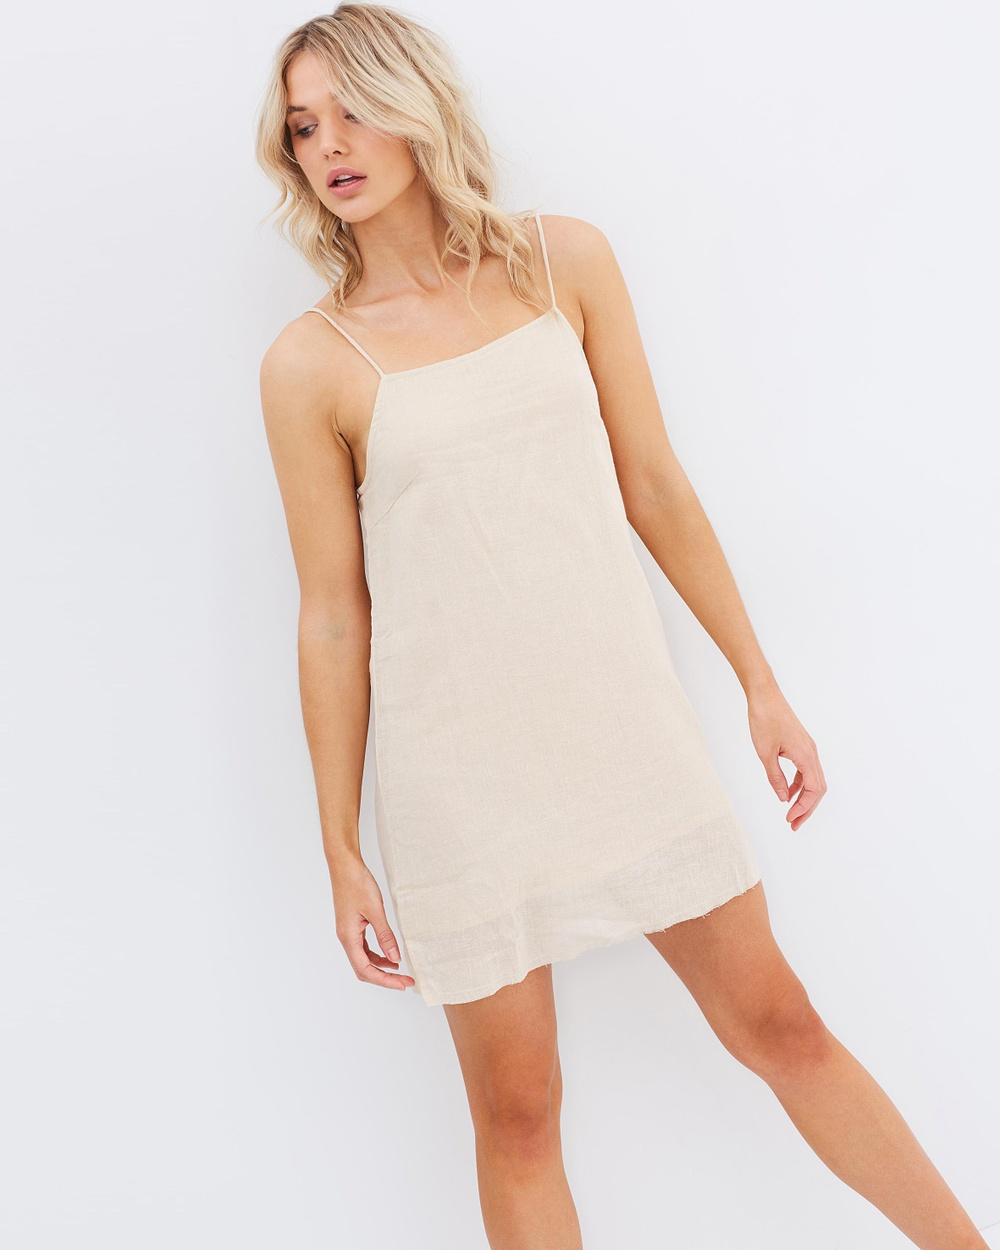 Rue Stiic Gilmore Mini Dress Dresses Sand Linen Gilmore Mini Dress